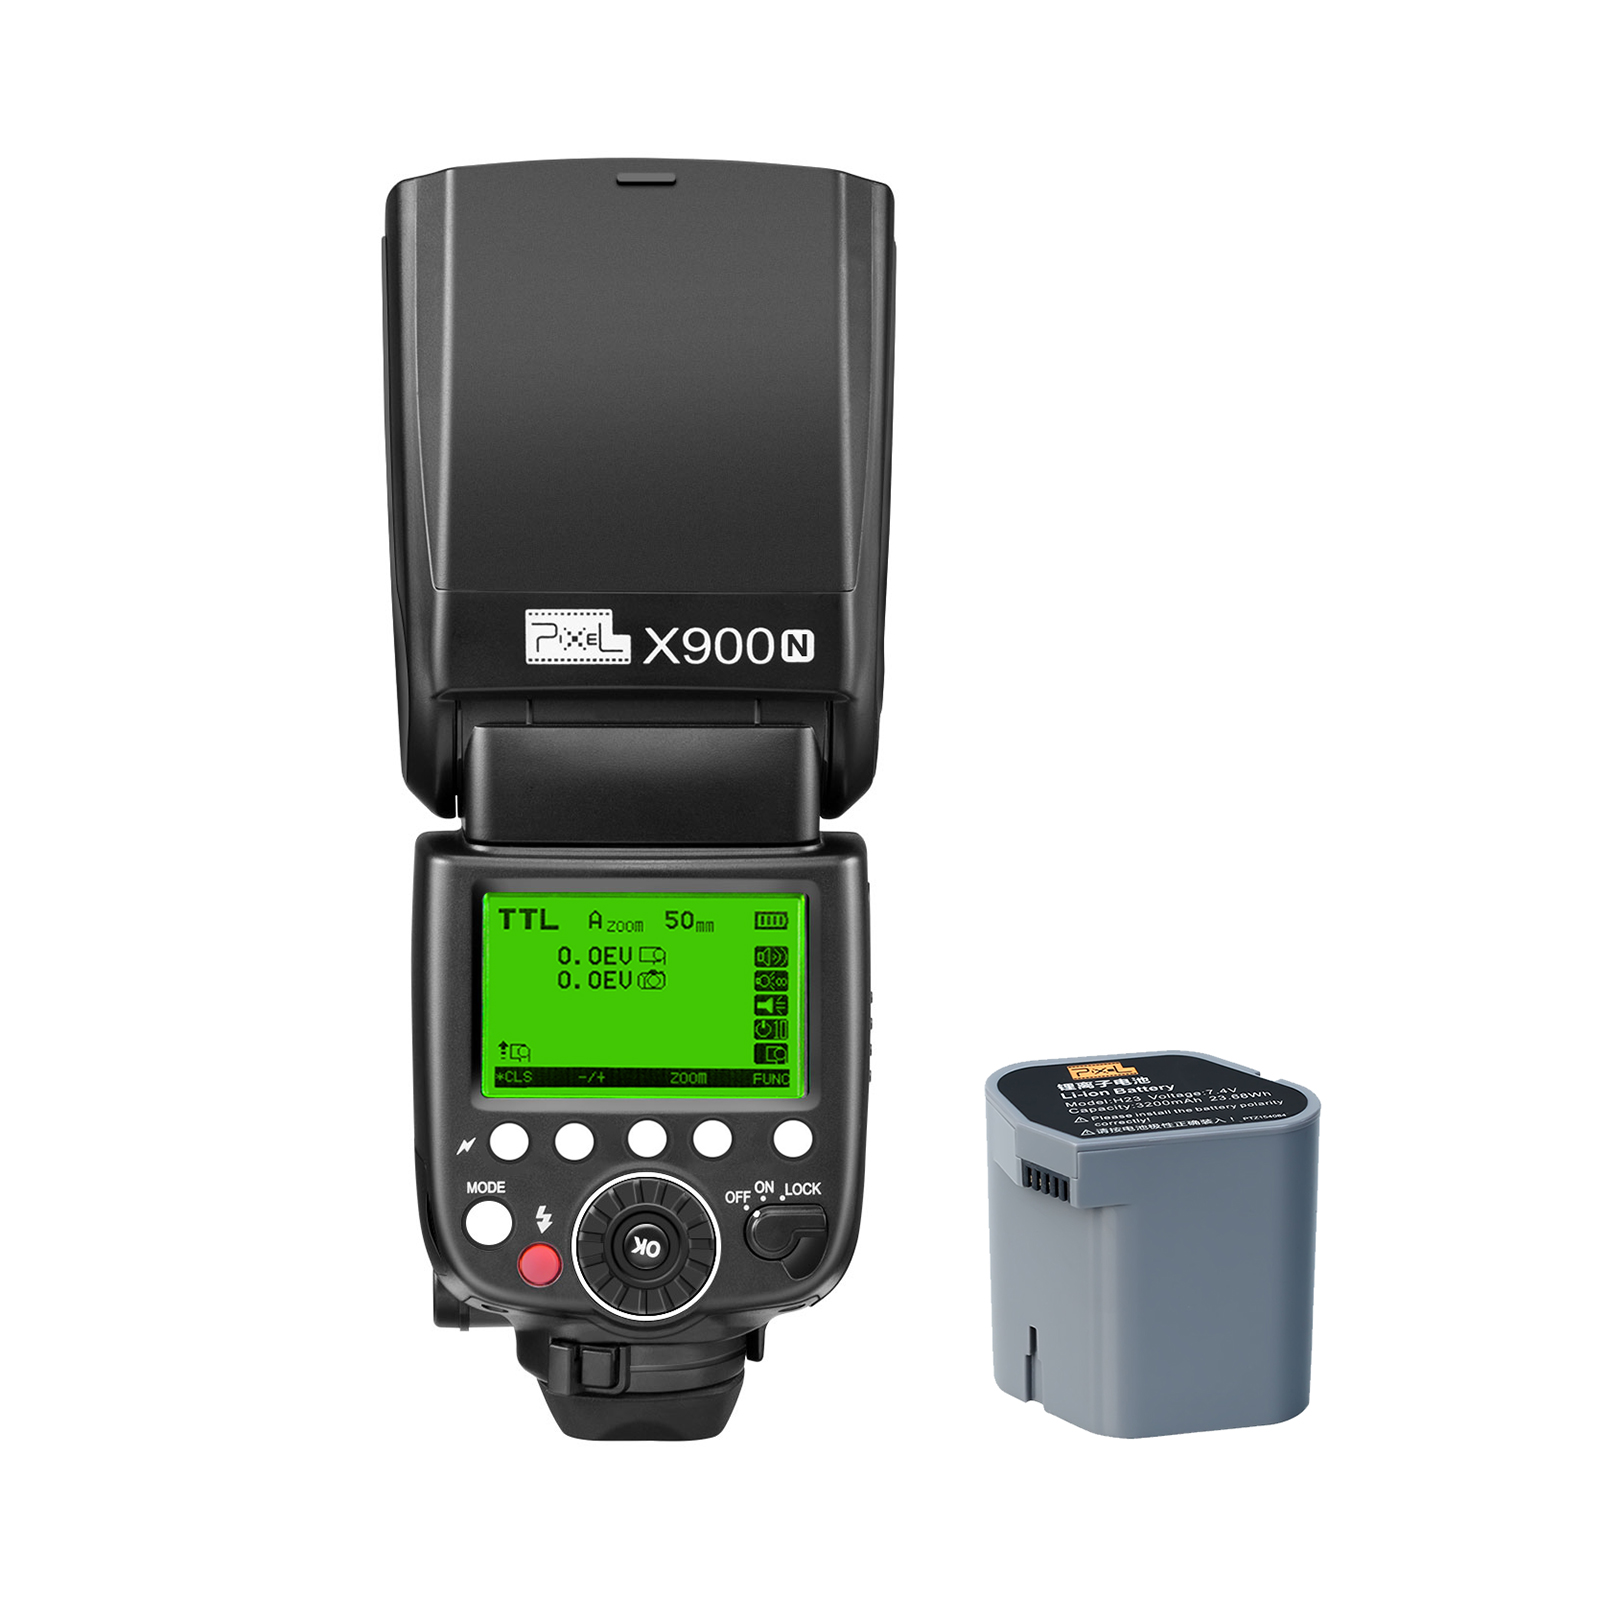 Pixel X900 FOR Nikon Lithium Battery Speedlite, high speed synchronization and powerful performance